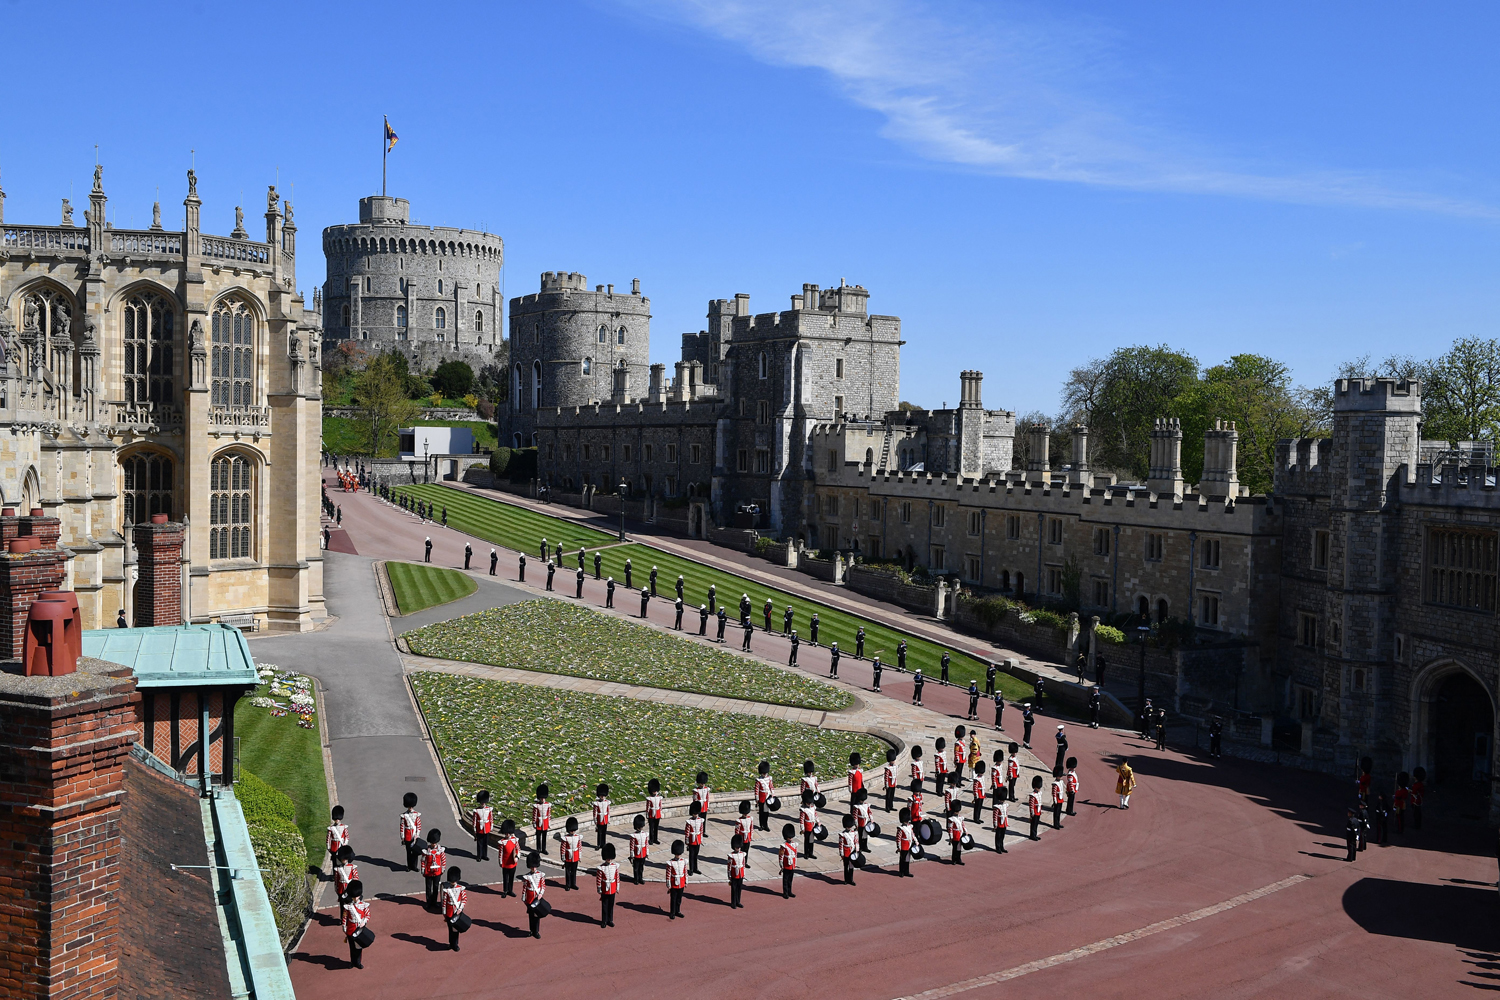 Members of the armed forces take their positions during the funeral service of Britain's Prince Philip, Duke of Edinburgh